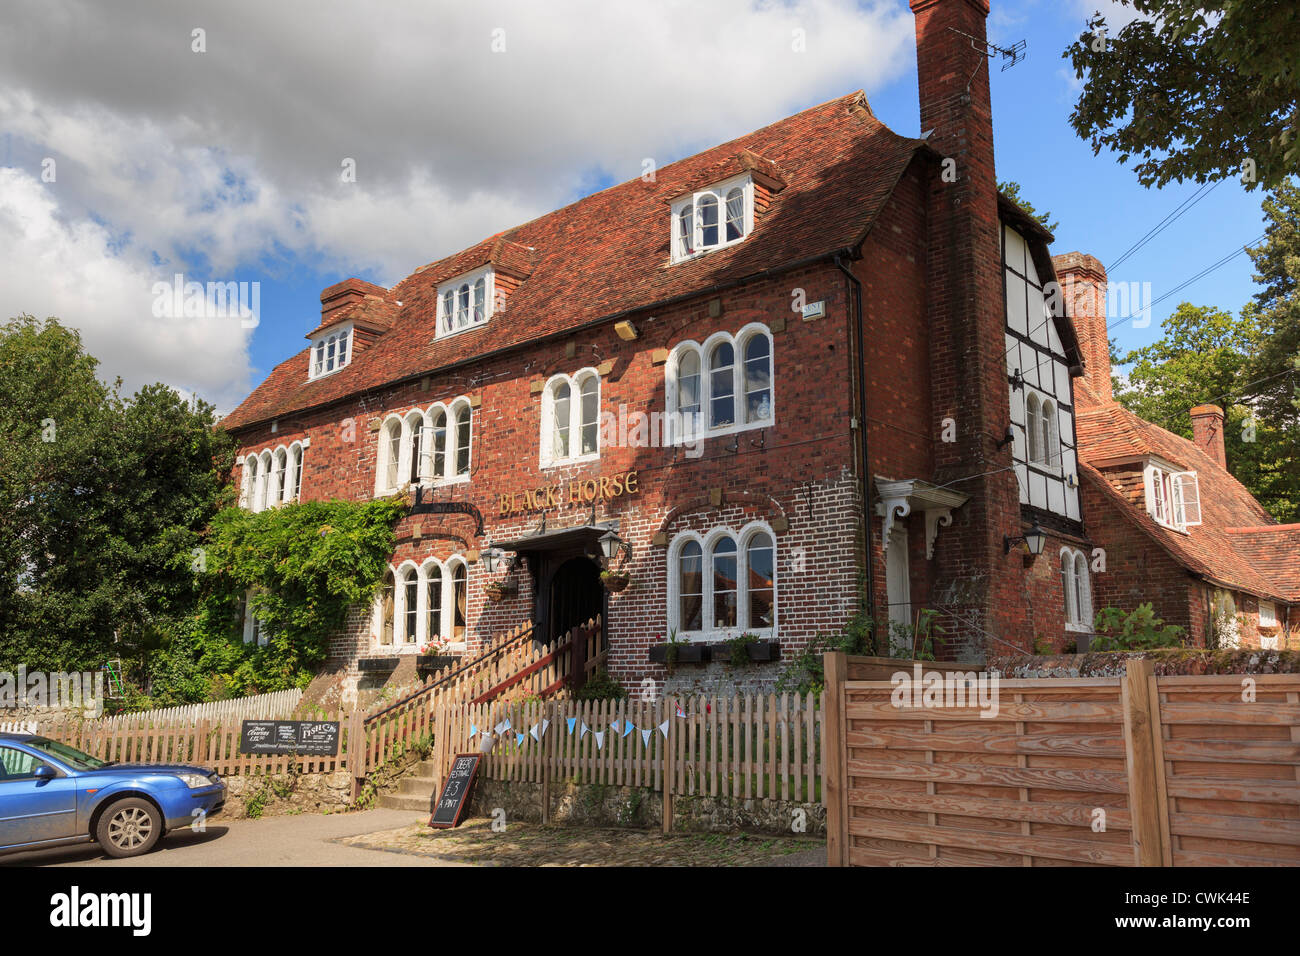 15th century Black Horse pub reputed to have many ghosts in most haunted English village of Pluckley, Kent, England, - Stock Image